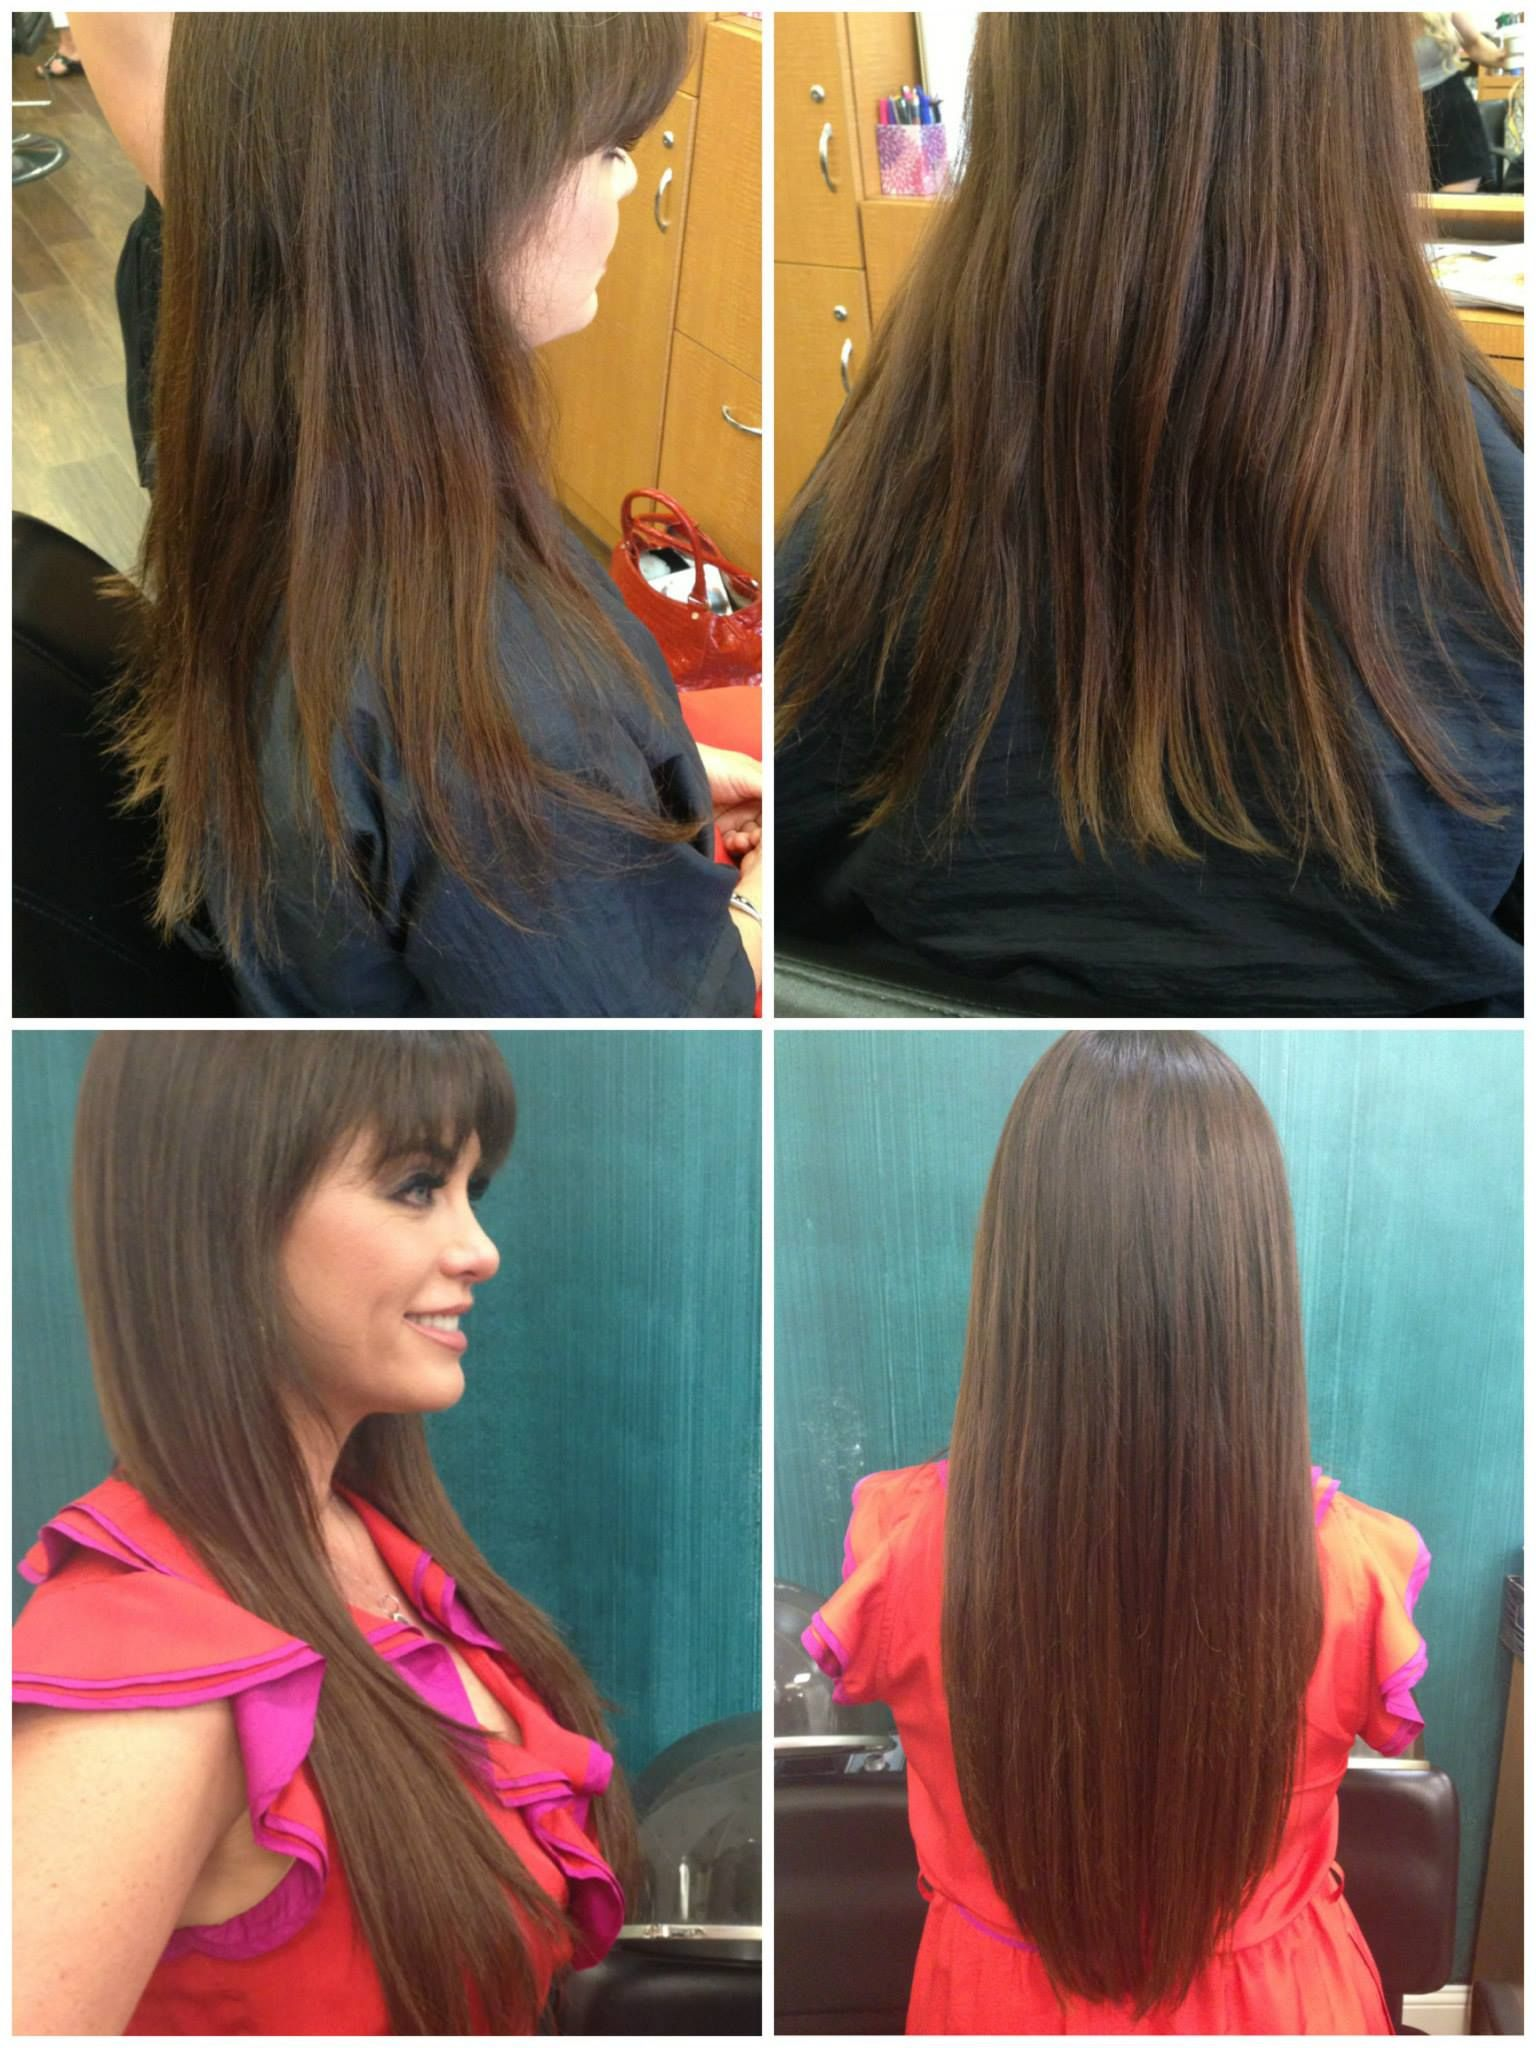 Before And After Hair Extensions On Dandra Simmons Using The Tape